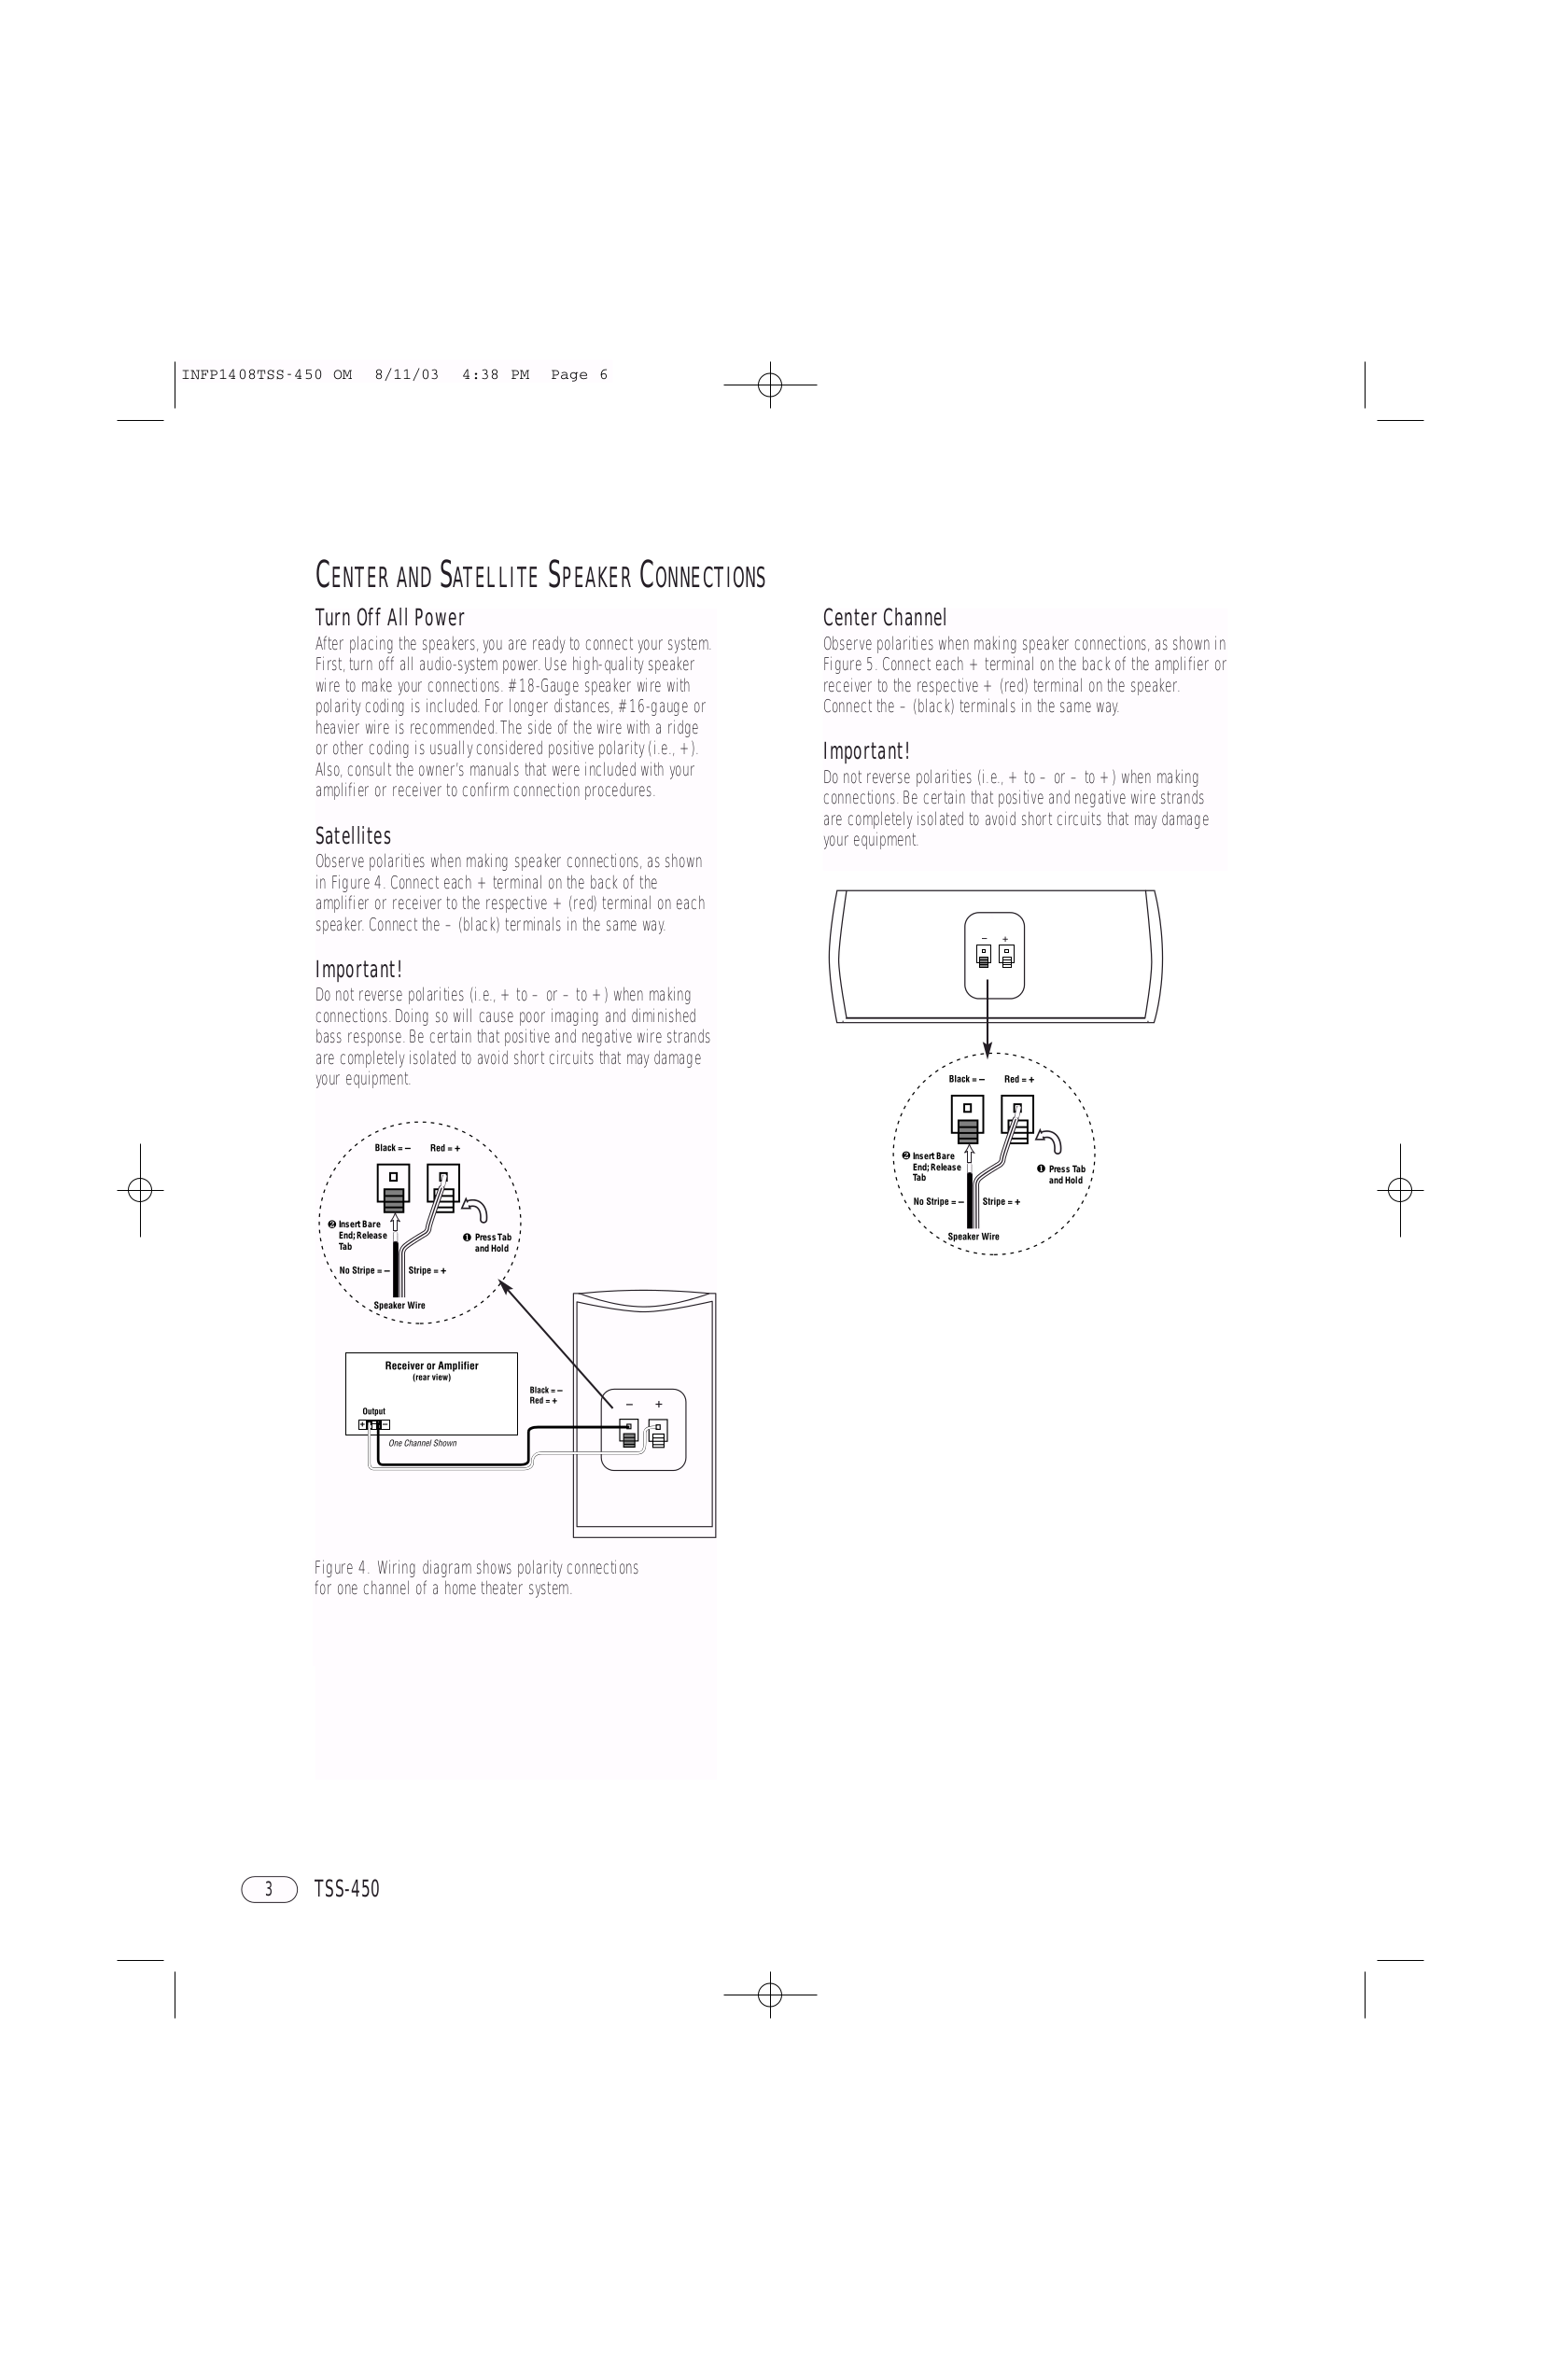 Pdf Manual For Infinity Speaker System Total Solutions Tss 450 Home Theater Wiring Diagrams Satellite Page Preview